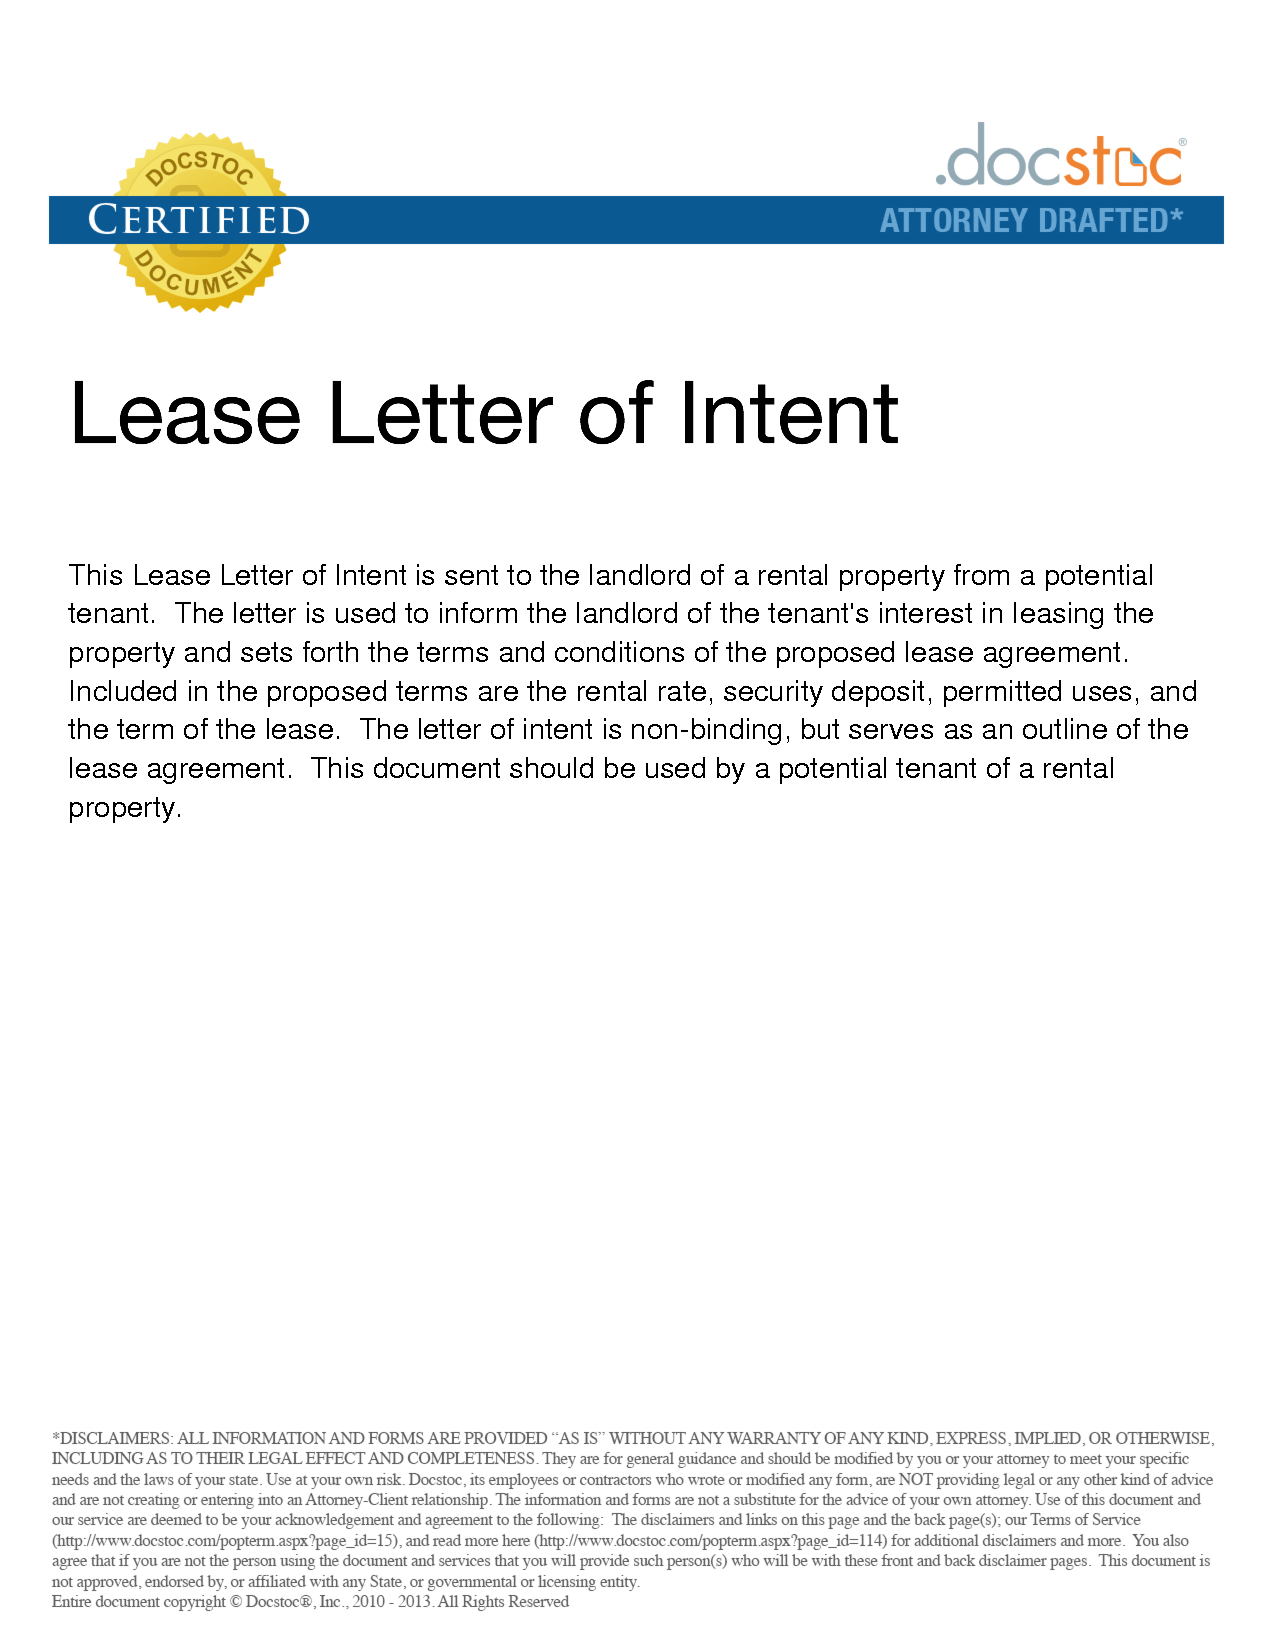 Letter Of Intent to Rent Template - Sample Letter Intent to Lease Real Estate Property Residential